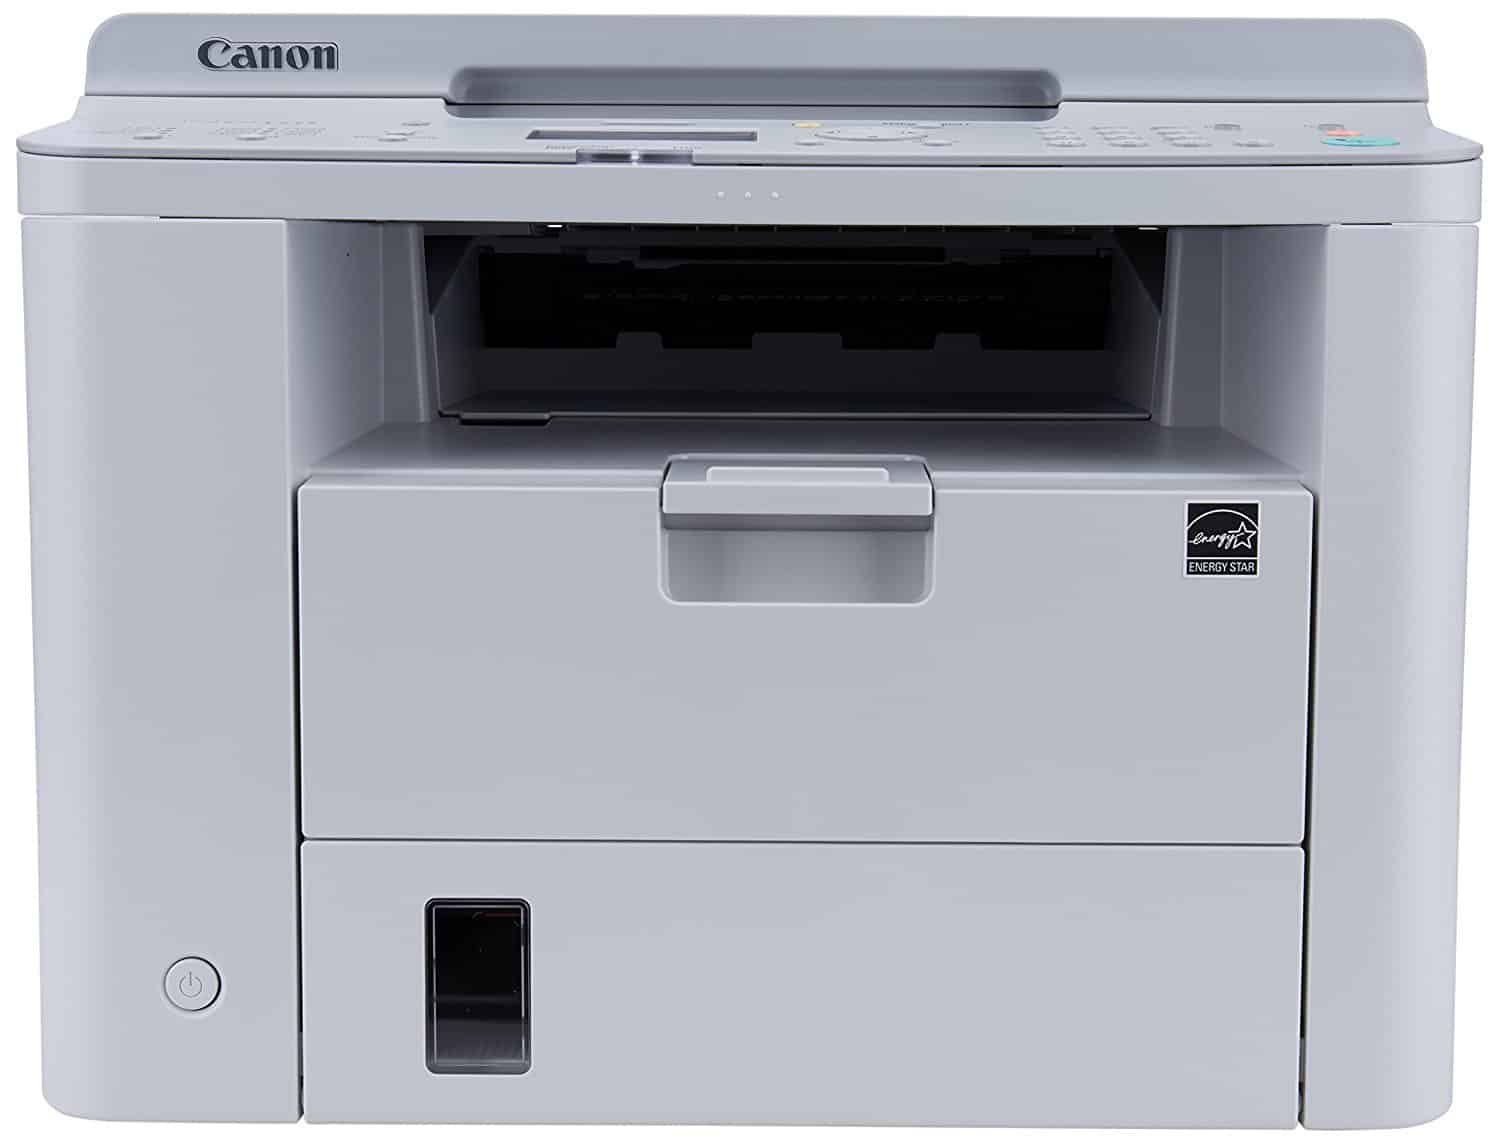 Top 13 Best Copy Machines For Small Business In 2020 Reviews Best Laser Printer Laser Printer Multifunction Printer